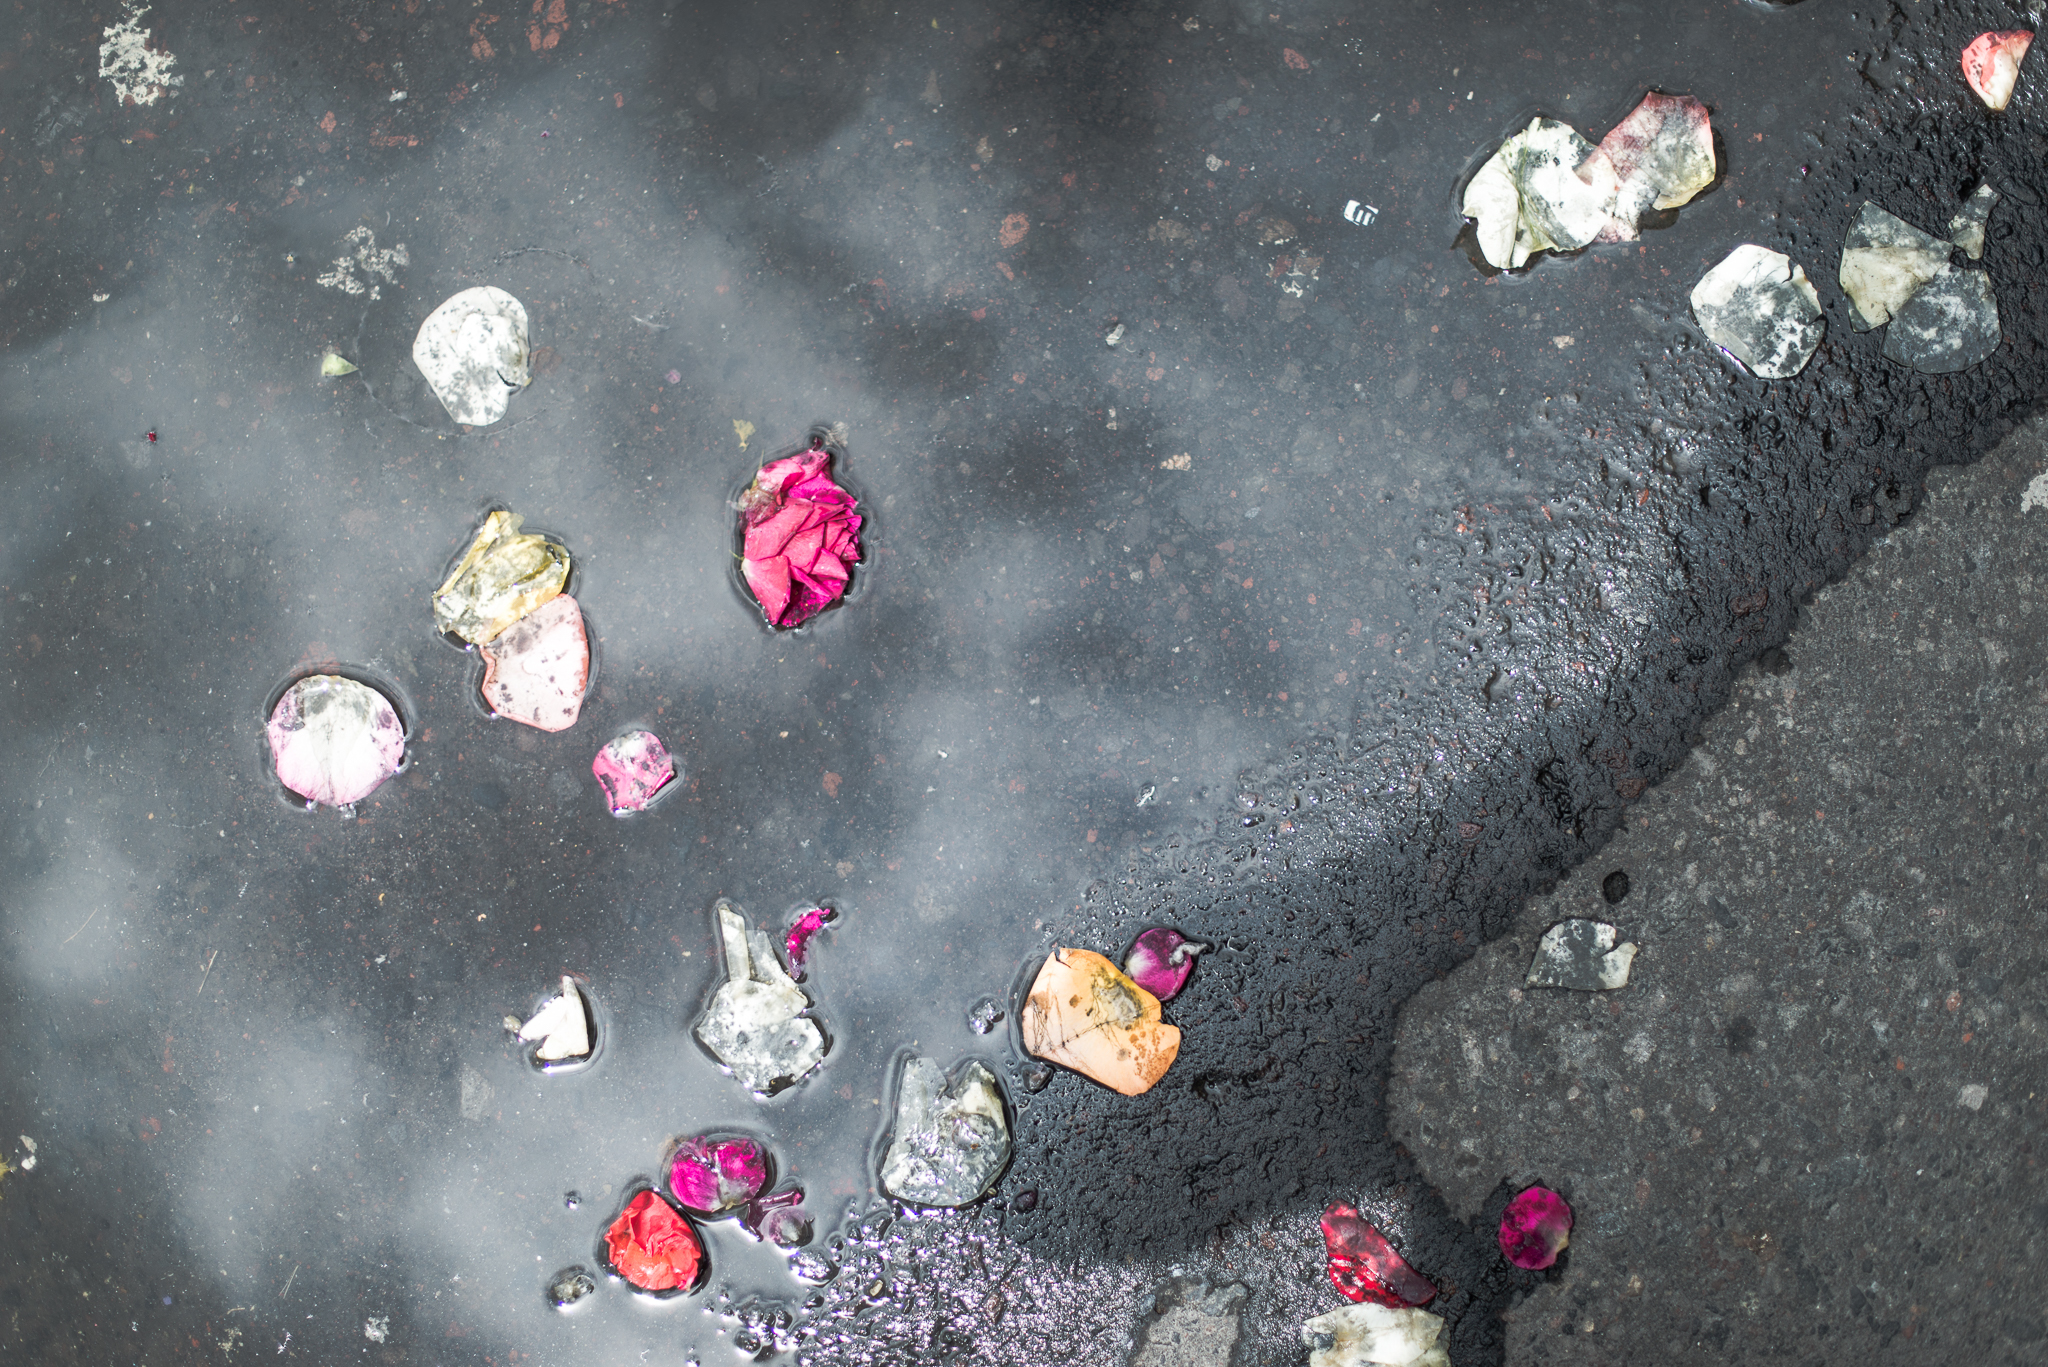 Rose petals after a religious procession...Old Town, Quito